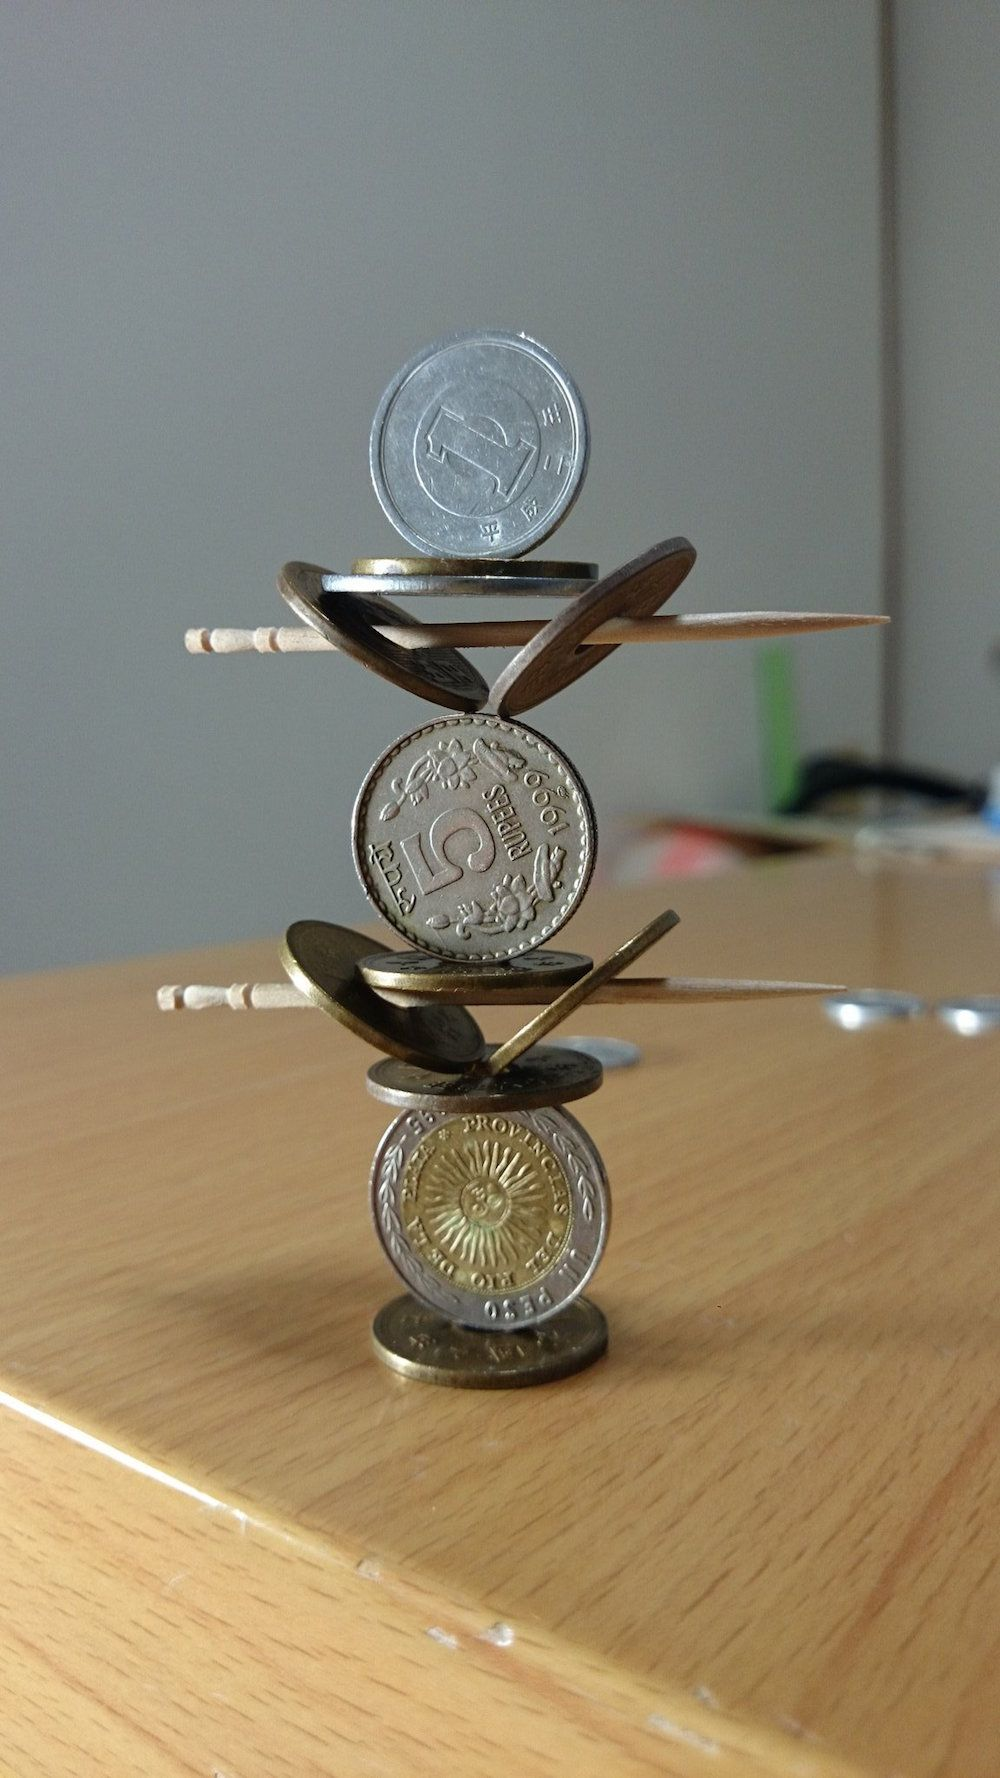 Twitter user stacks coins in impossible ways creating mind-blowing sculptures